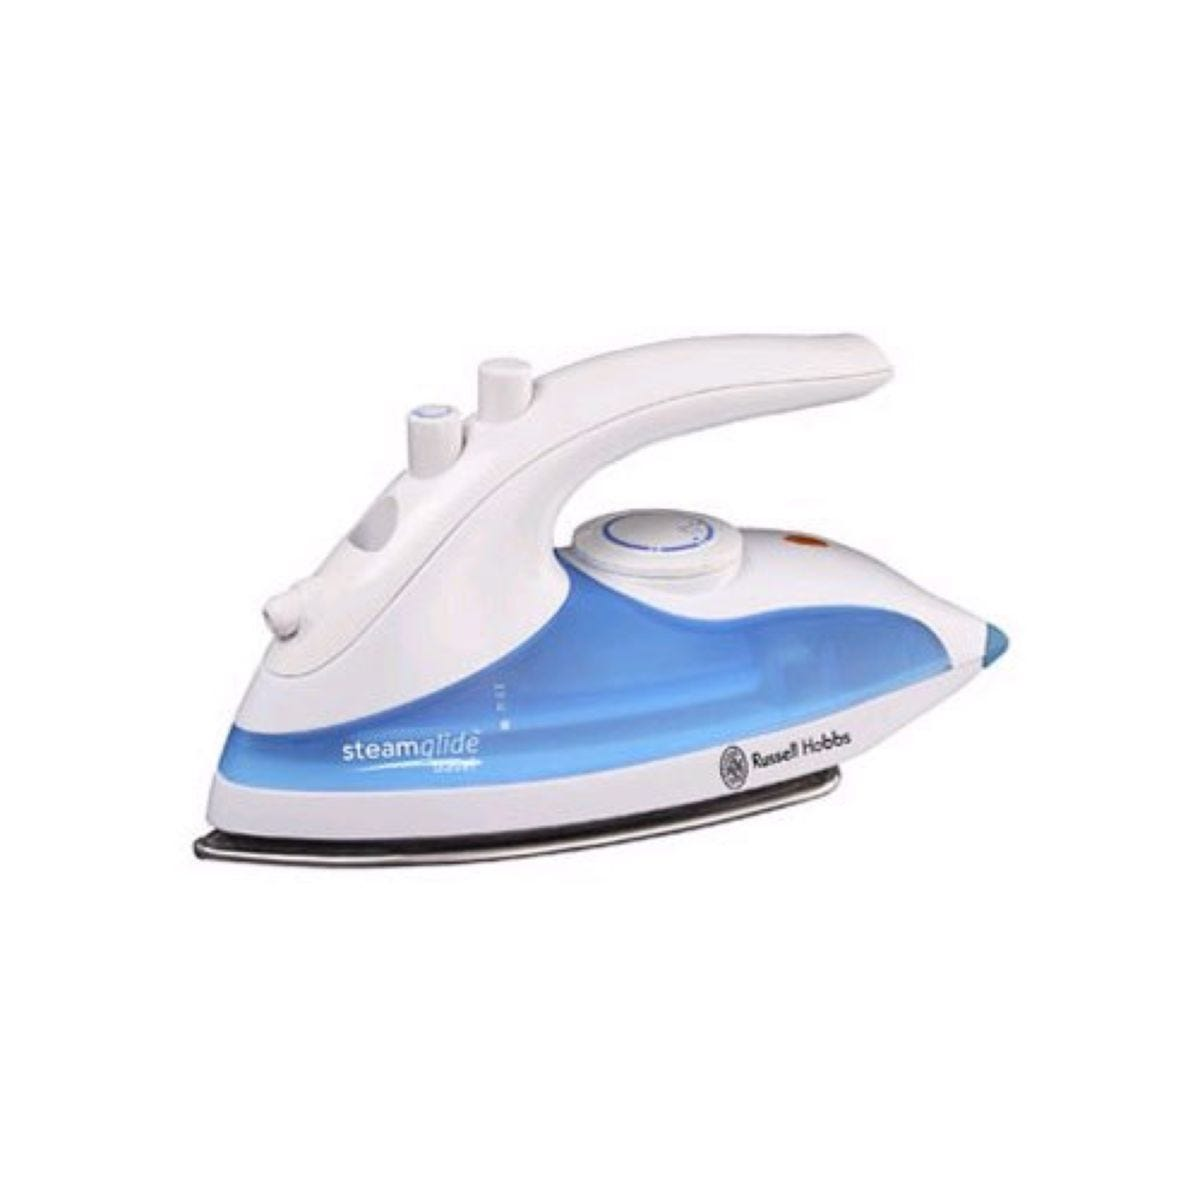 Russell Hobbs 22470 Steamglide 760W Travel Iron - White and Blue